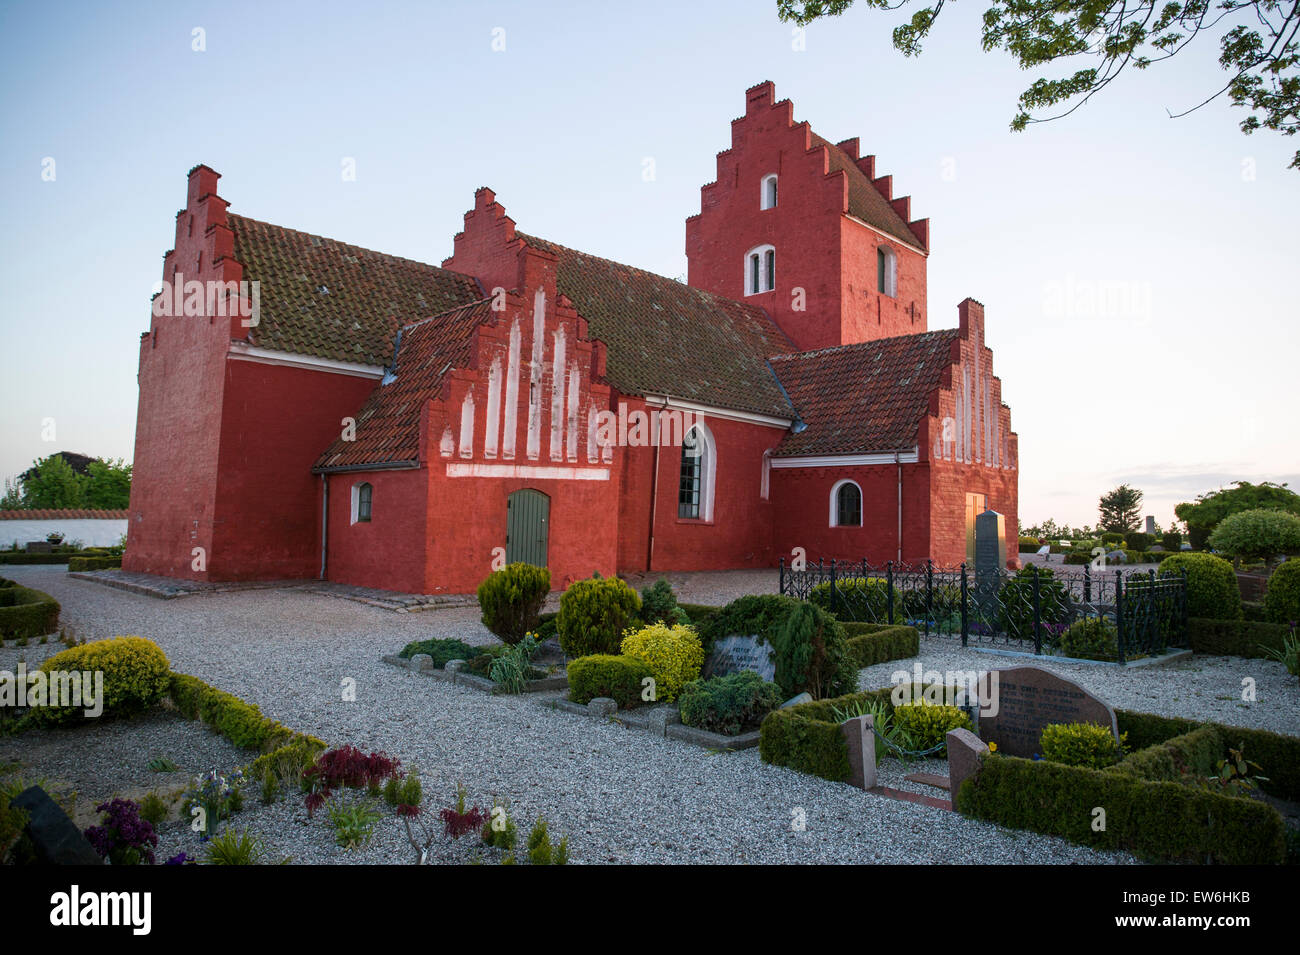 The red church near Raervig and Shelland Odds, Denmark. - Stock Image